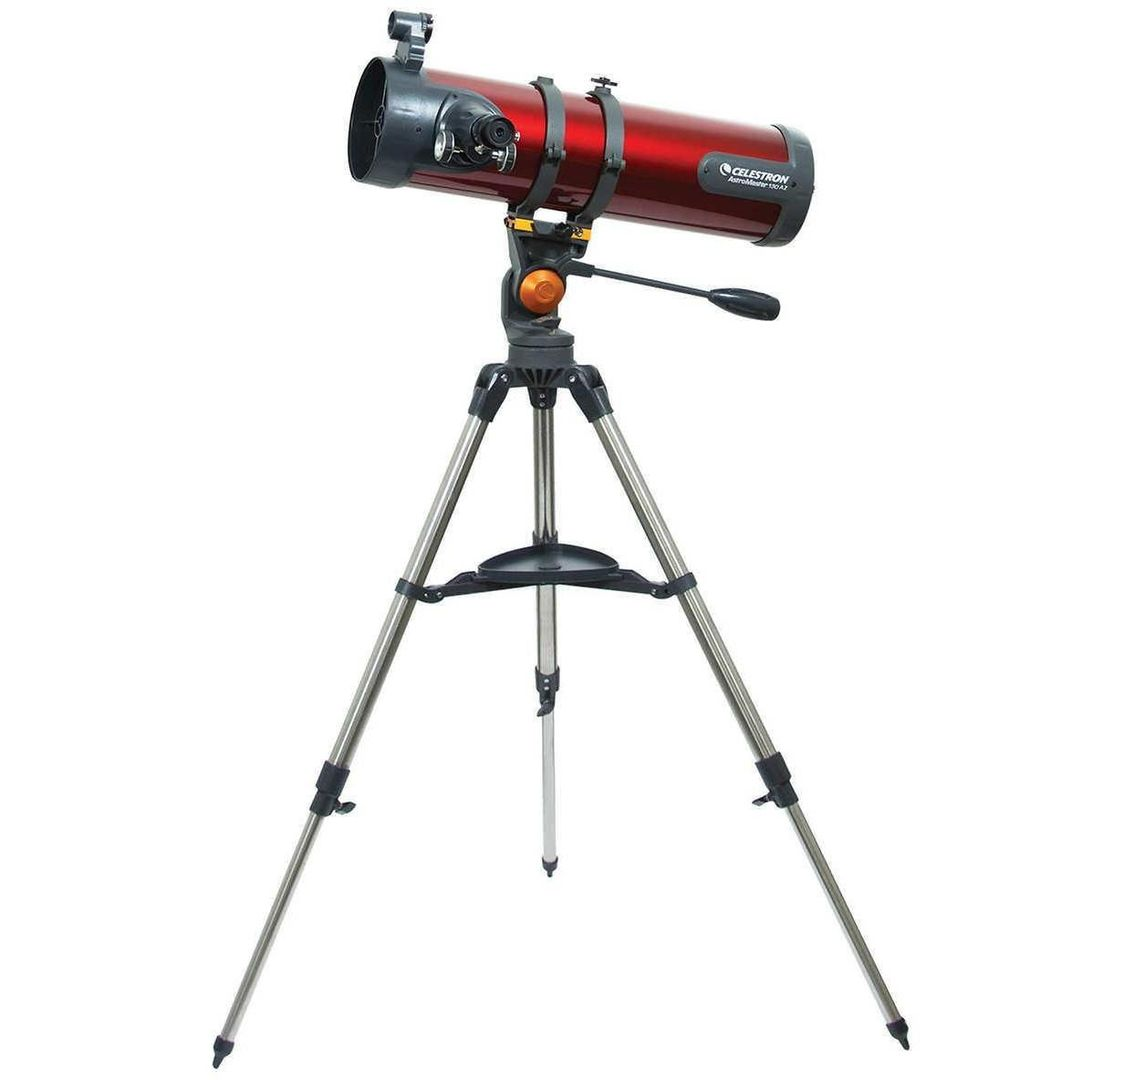 Buy Celestron Astromaster 130 Az Telescope in Dubai at cheap price